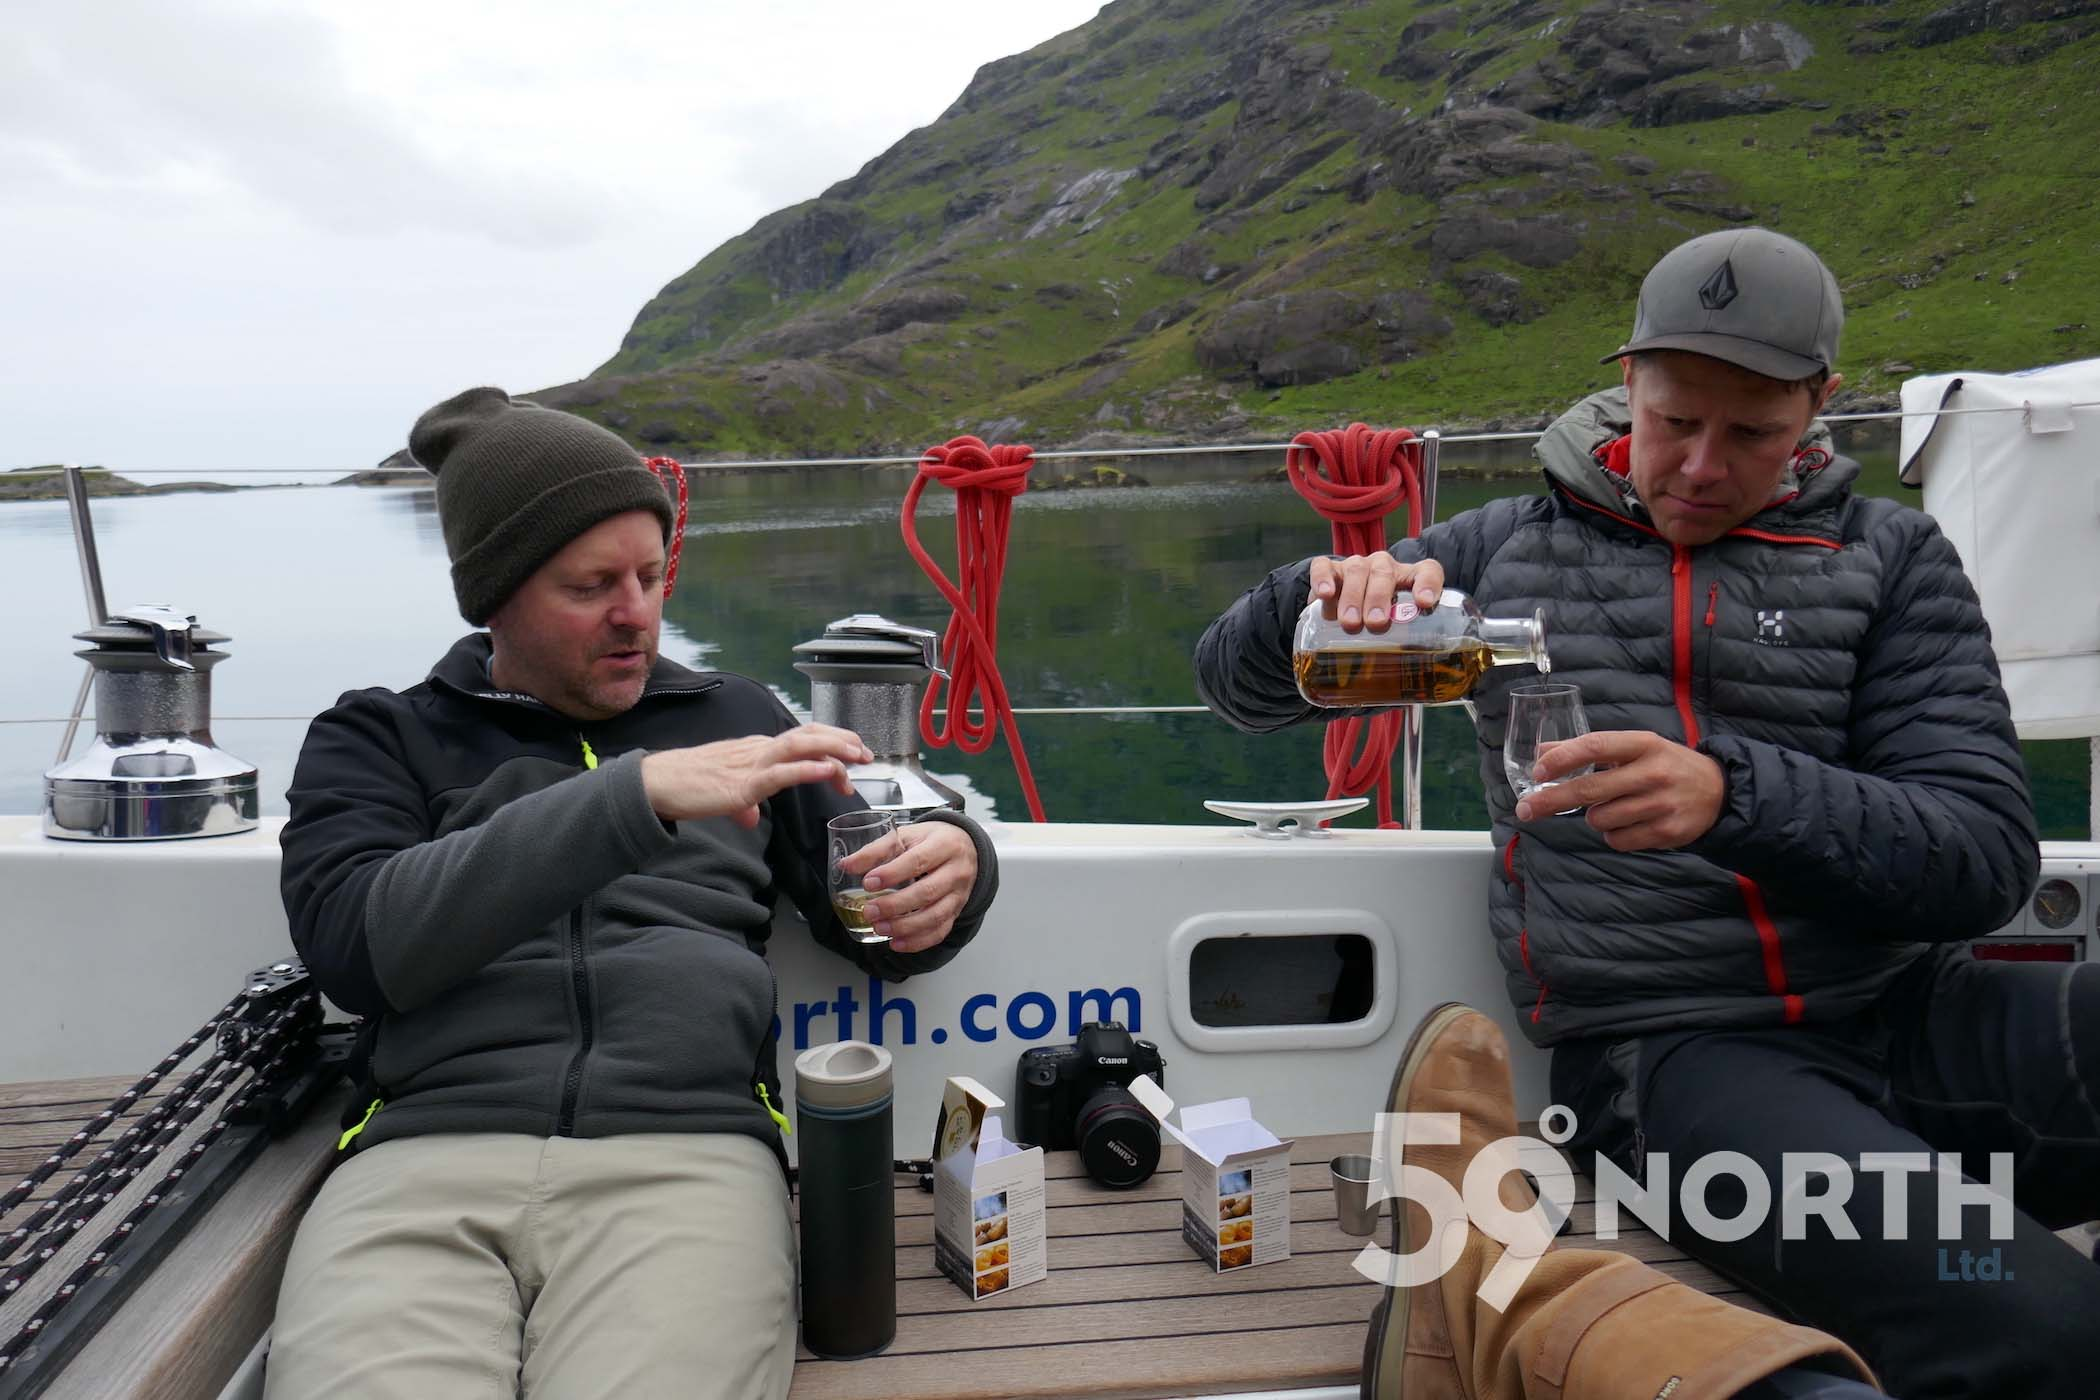 Anchored in the spectacular Loch Scavaig! Whisky cap at night. Leg 8, 2017: Sweden to Scotland 59-north.com